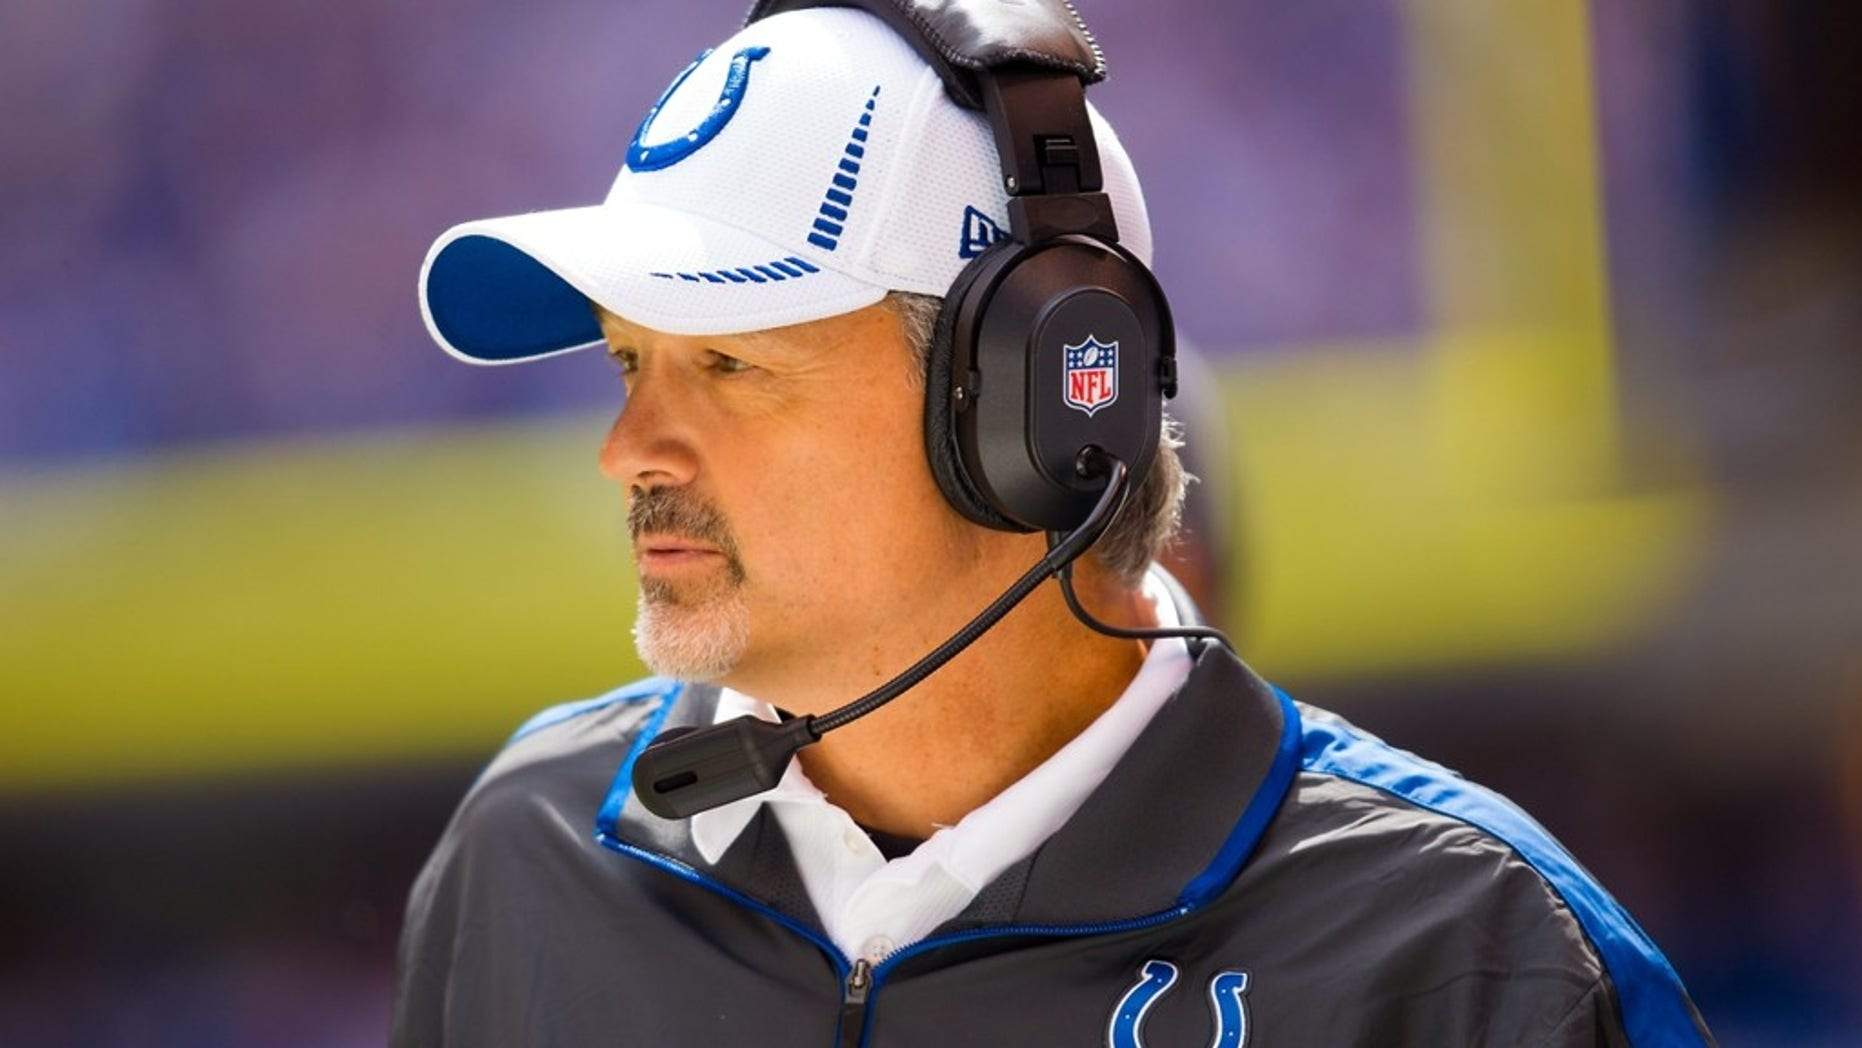 Indianapolis Colts head coach Chuck Pagano is reportedly battling a treatable form of leukemia, is expected to miss several games